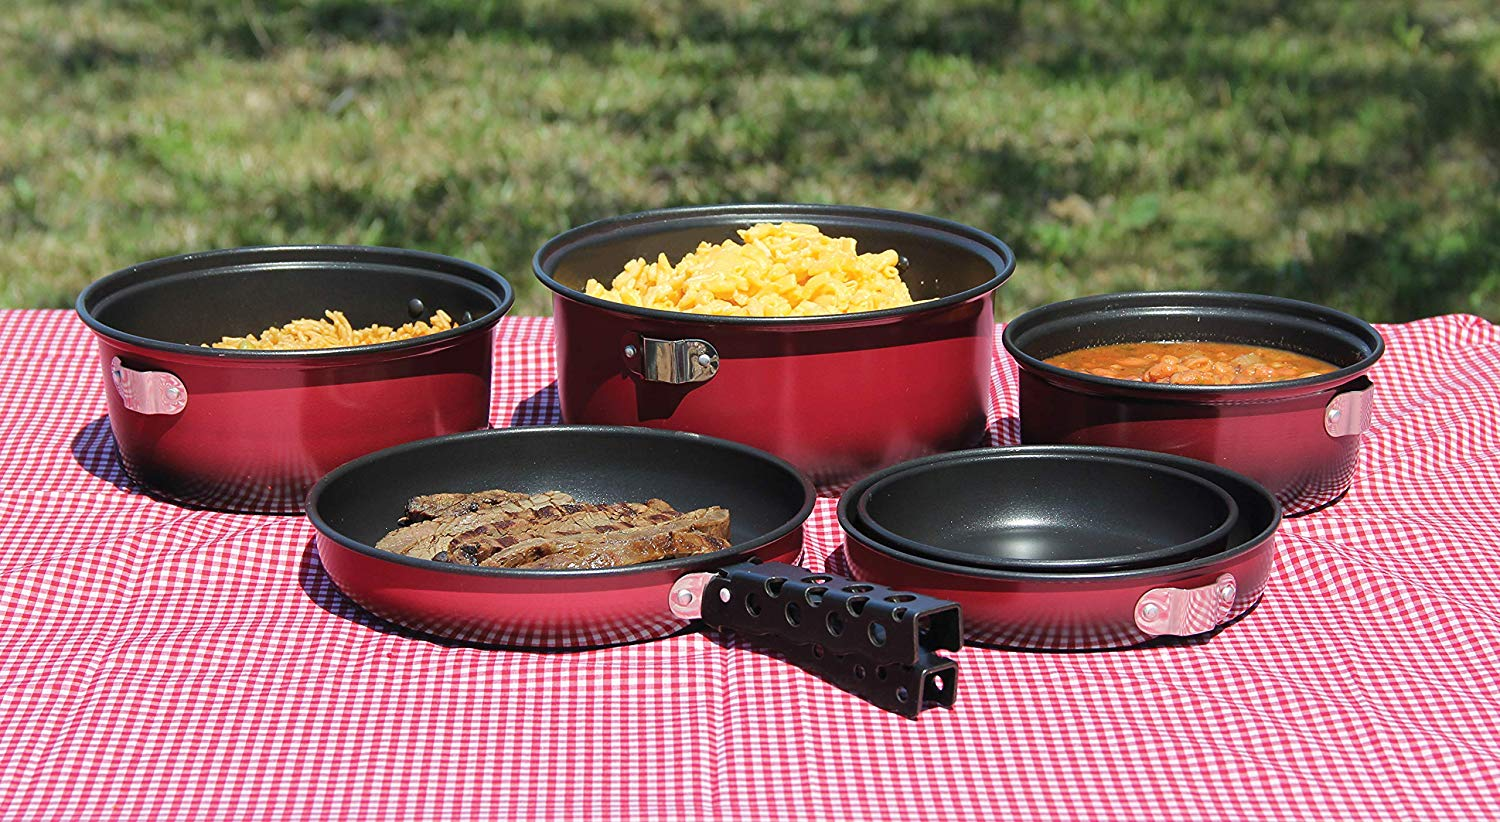 Best Camp Cookwares – Reviews & Buying Guide